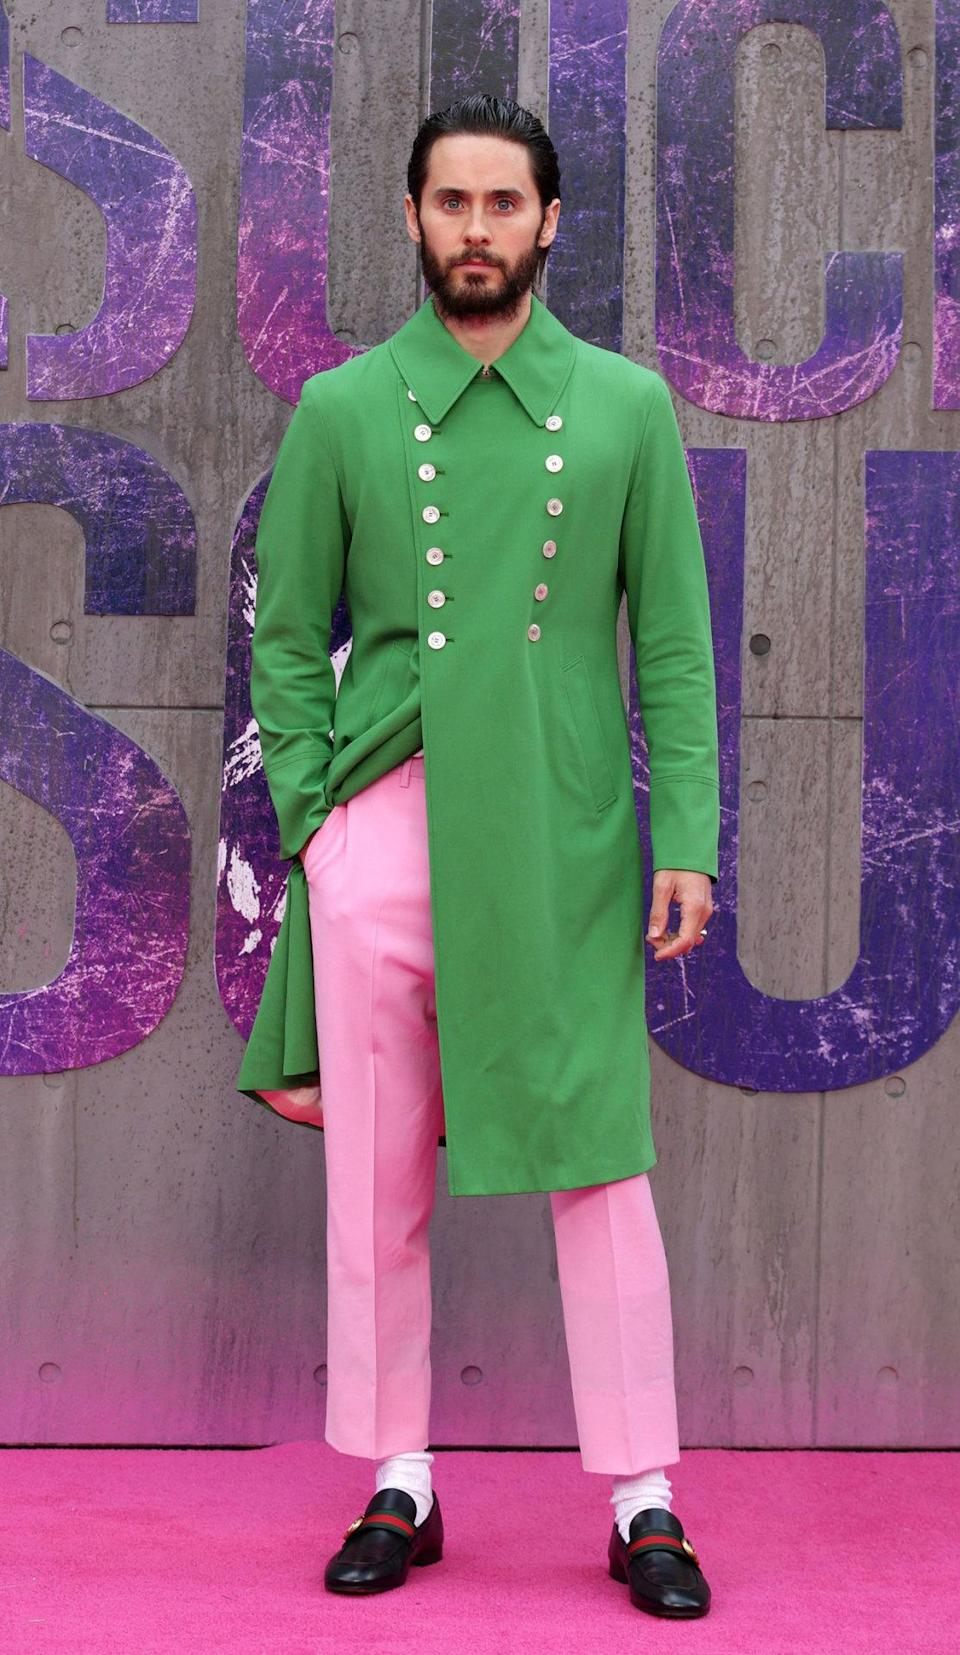 <p>Eyebrows were raised by Jared Leto's outfit which looked like it'd been stolen from the Joker's own wardrobe.</p>